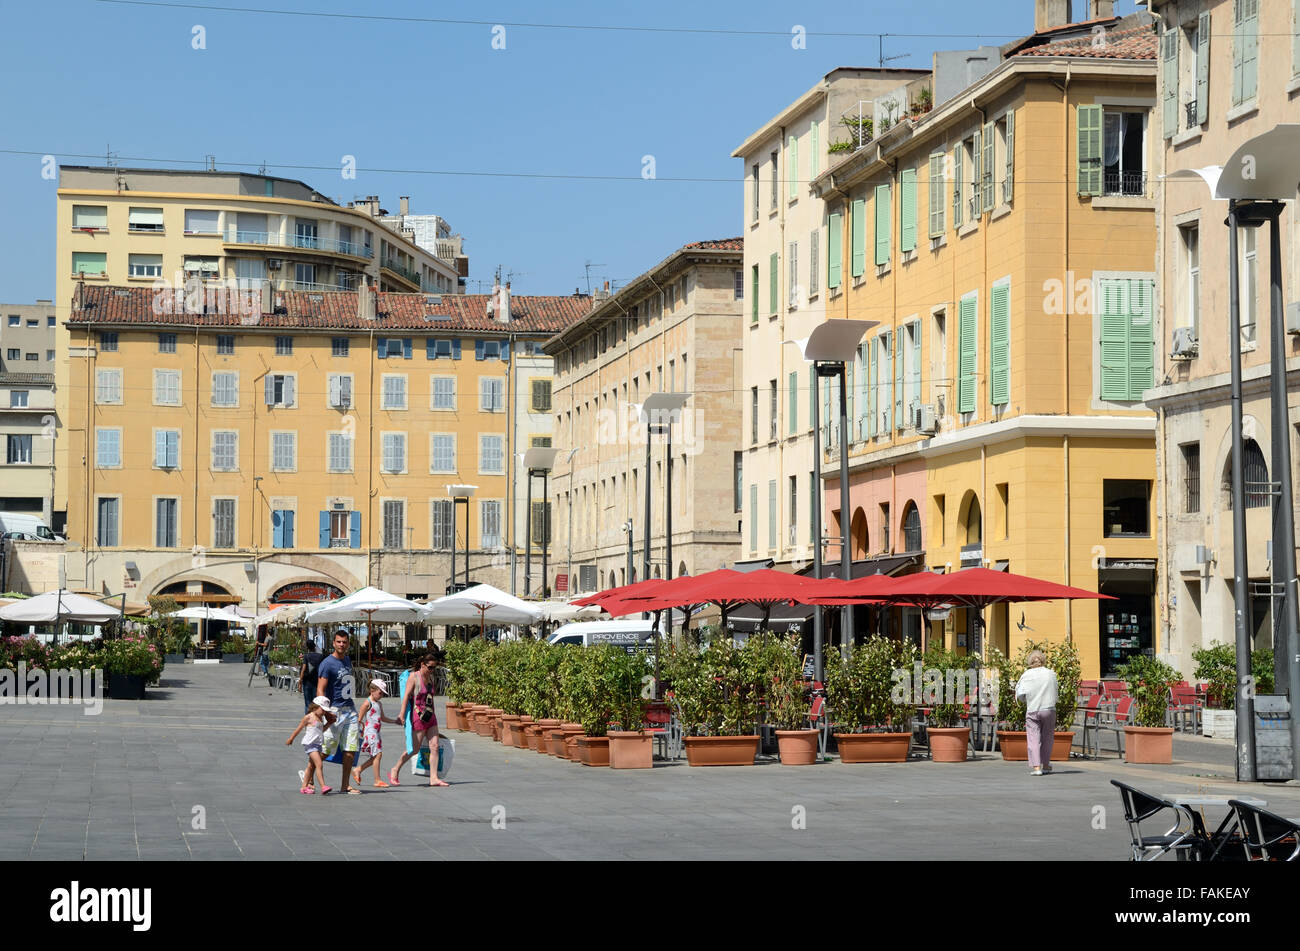 Place or Cours Estienne d'Orves Town Square or Plaza Surrounded by Pavement Cafés and Restaurants Marseille - Stock Image